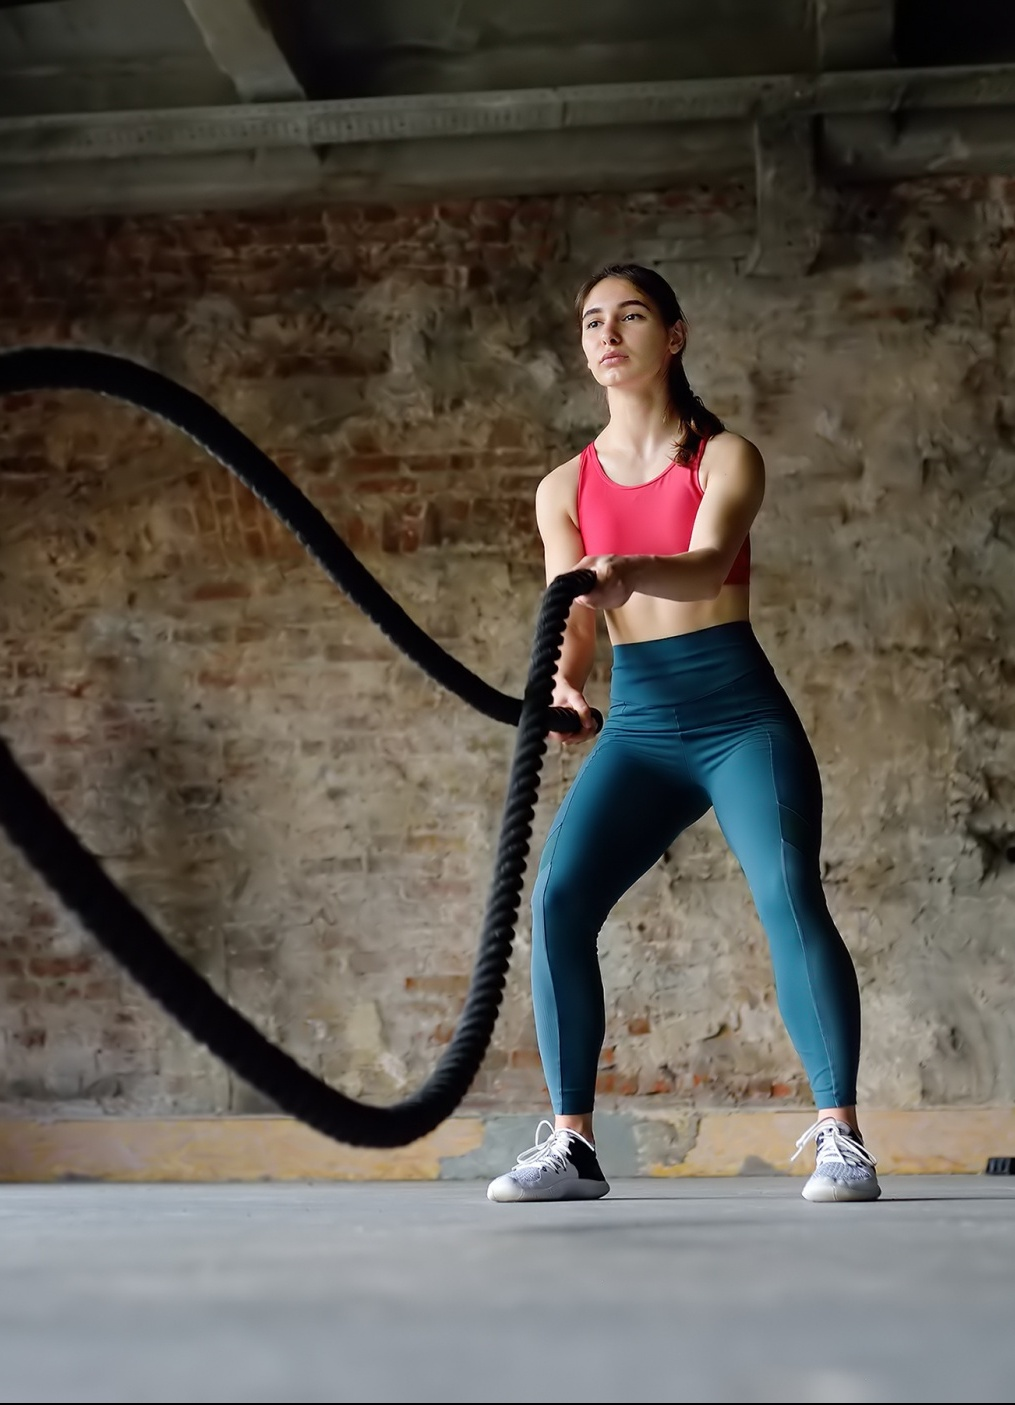 most effective exercise methods for women over 40, long dark-haired woman in bright pink sports bra and teal leggings with battle ropes